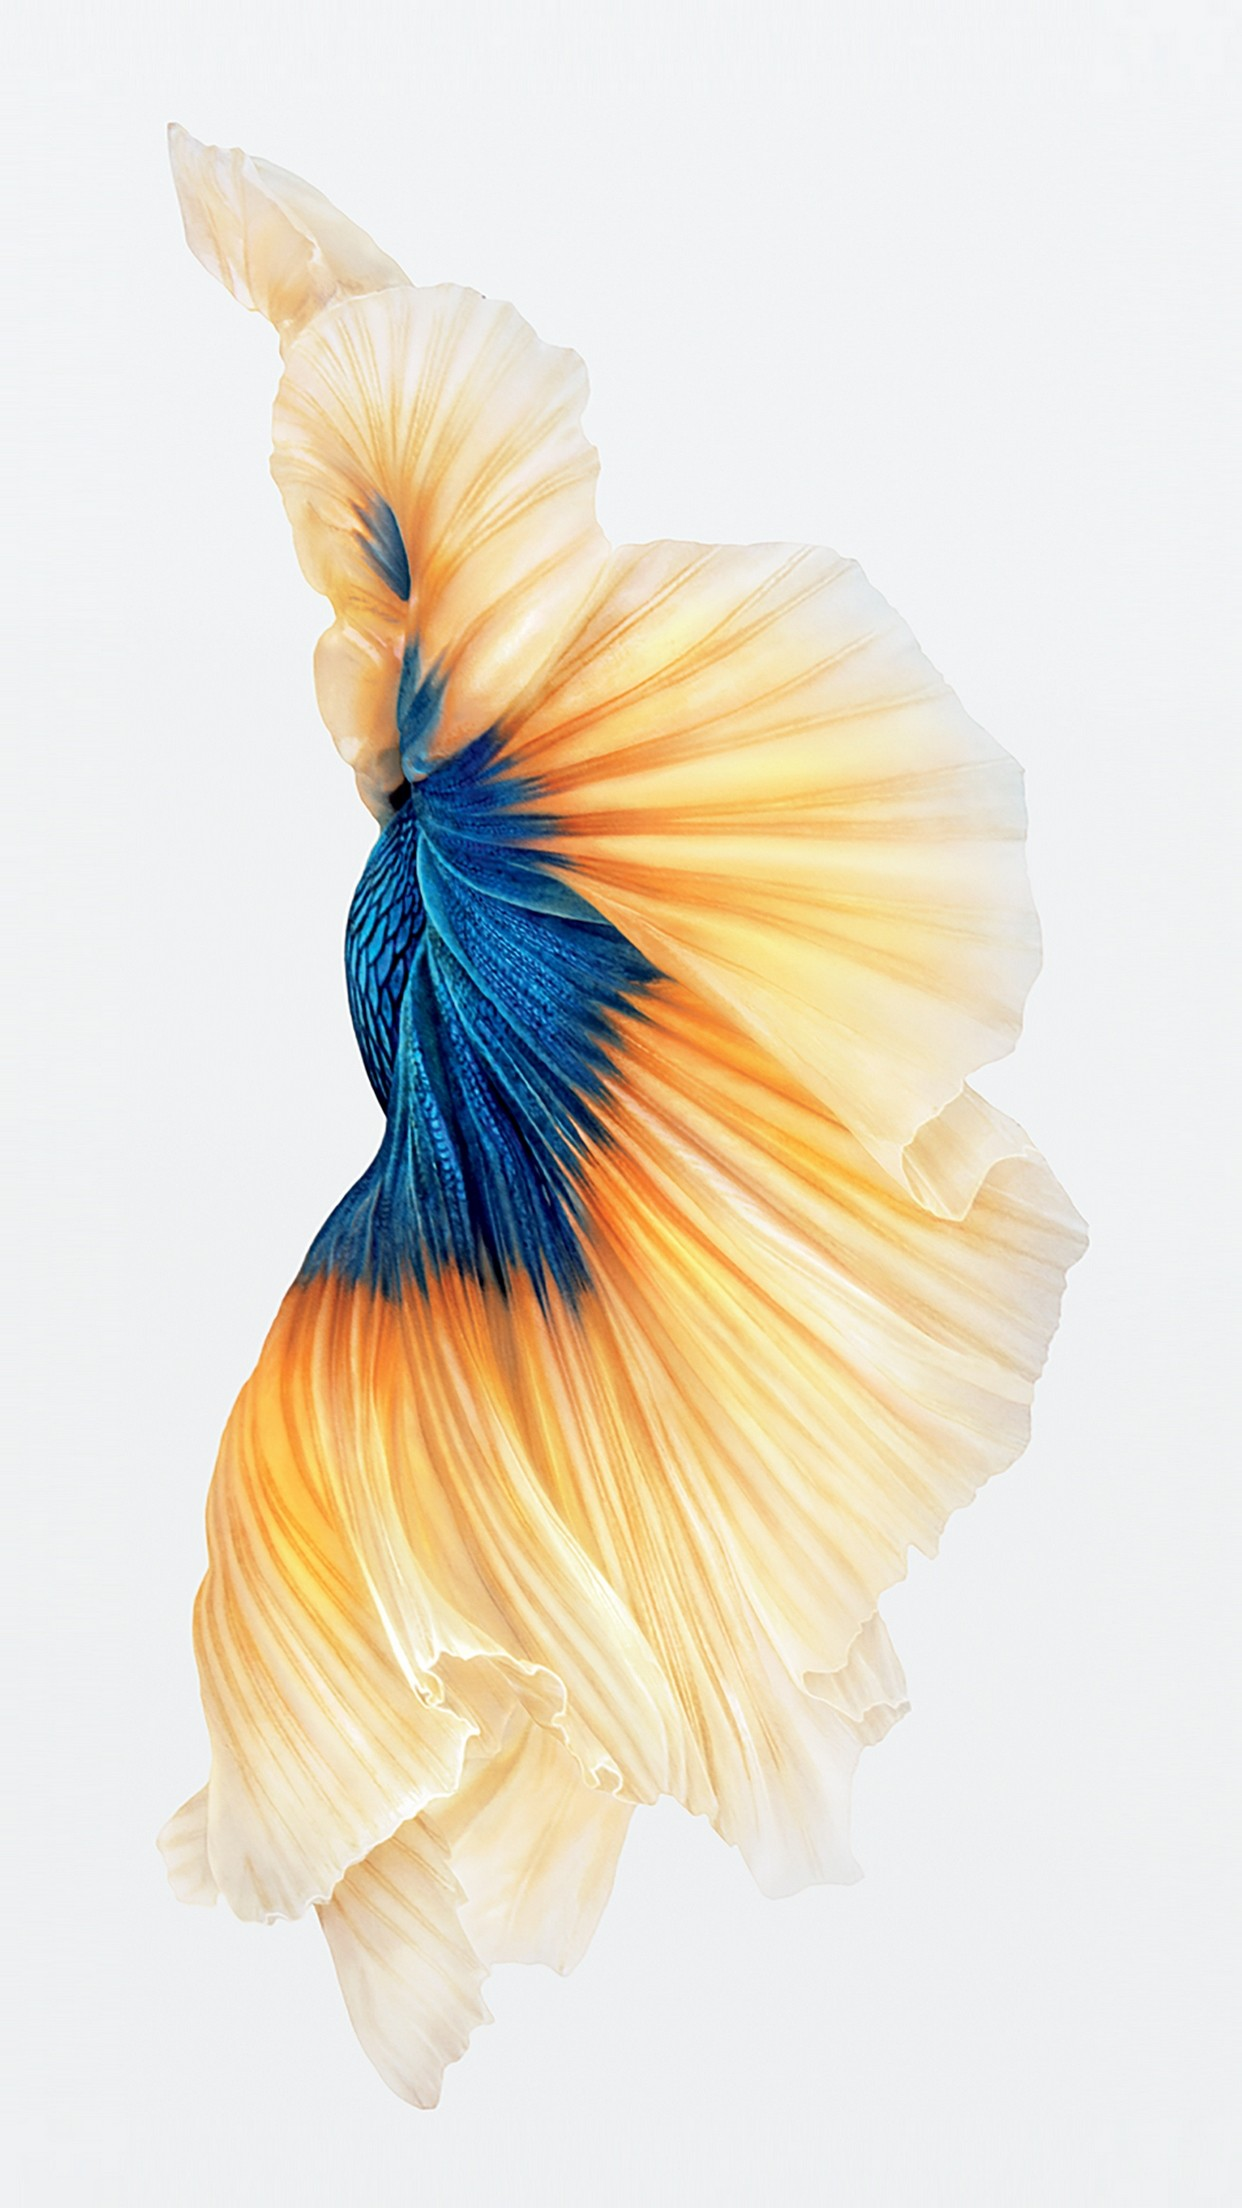 Macbook Animated Wallpaper Iphone 6s Fish Wallpapers 75 Images